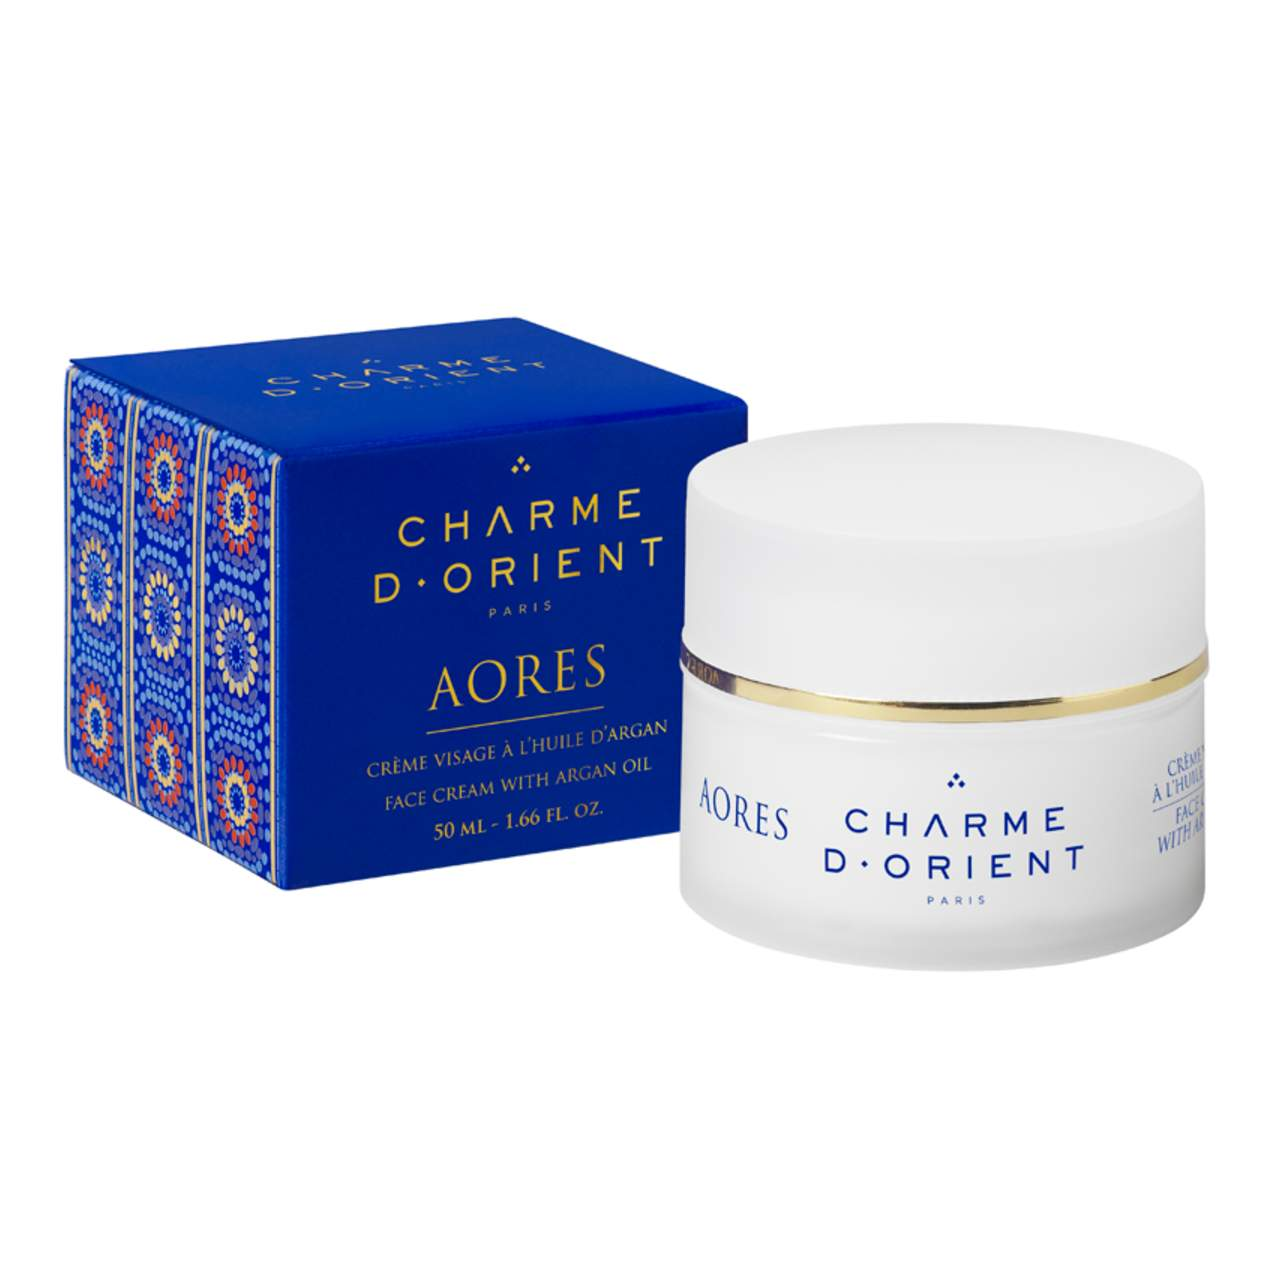 CHARME D'ORIENT Face Cream with Argan Oil